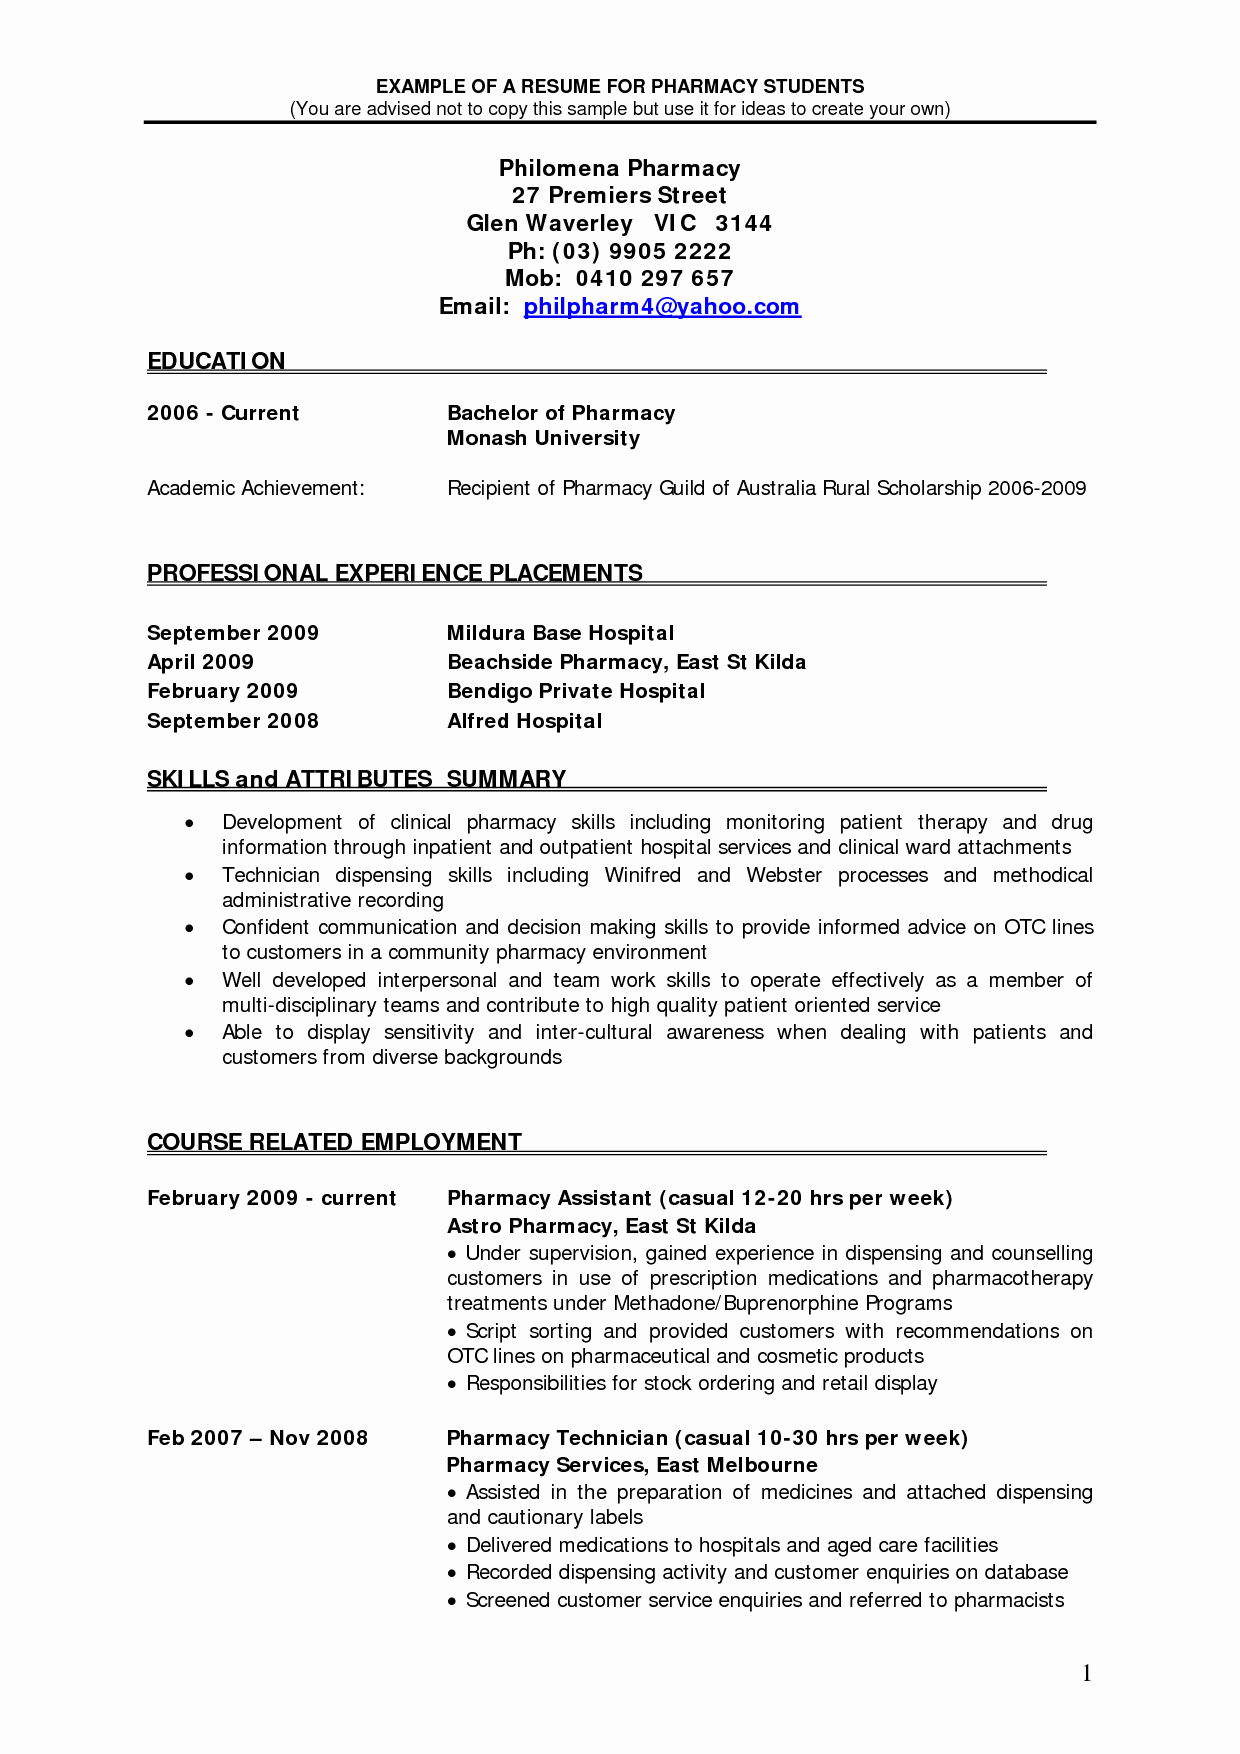 Follow these Updated Pharmacist Resume Samples Free 2018